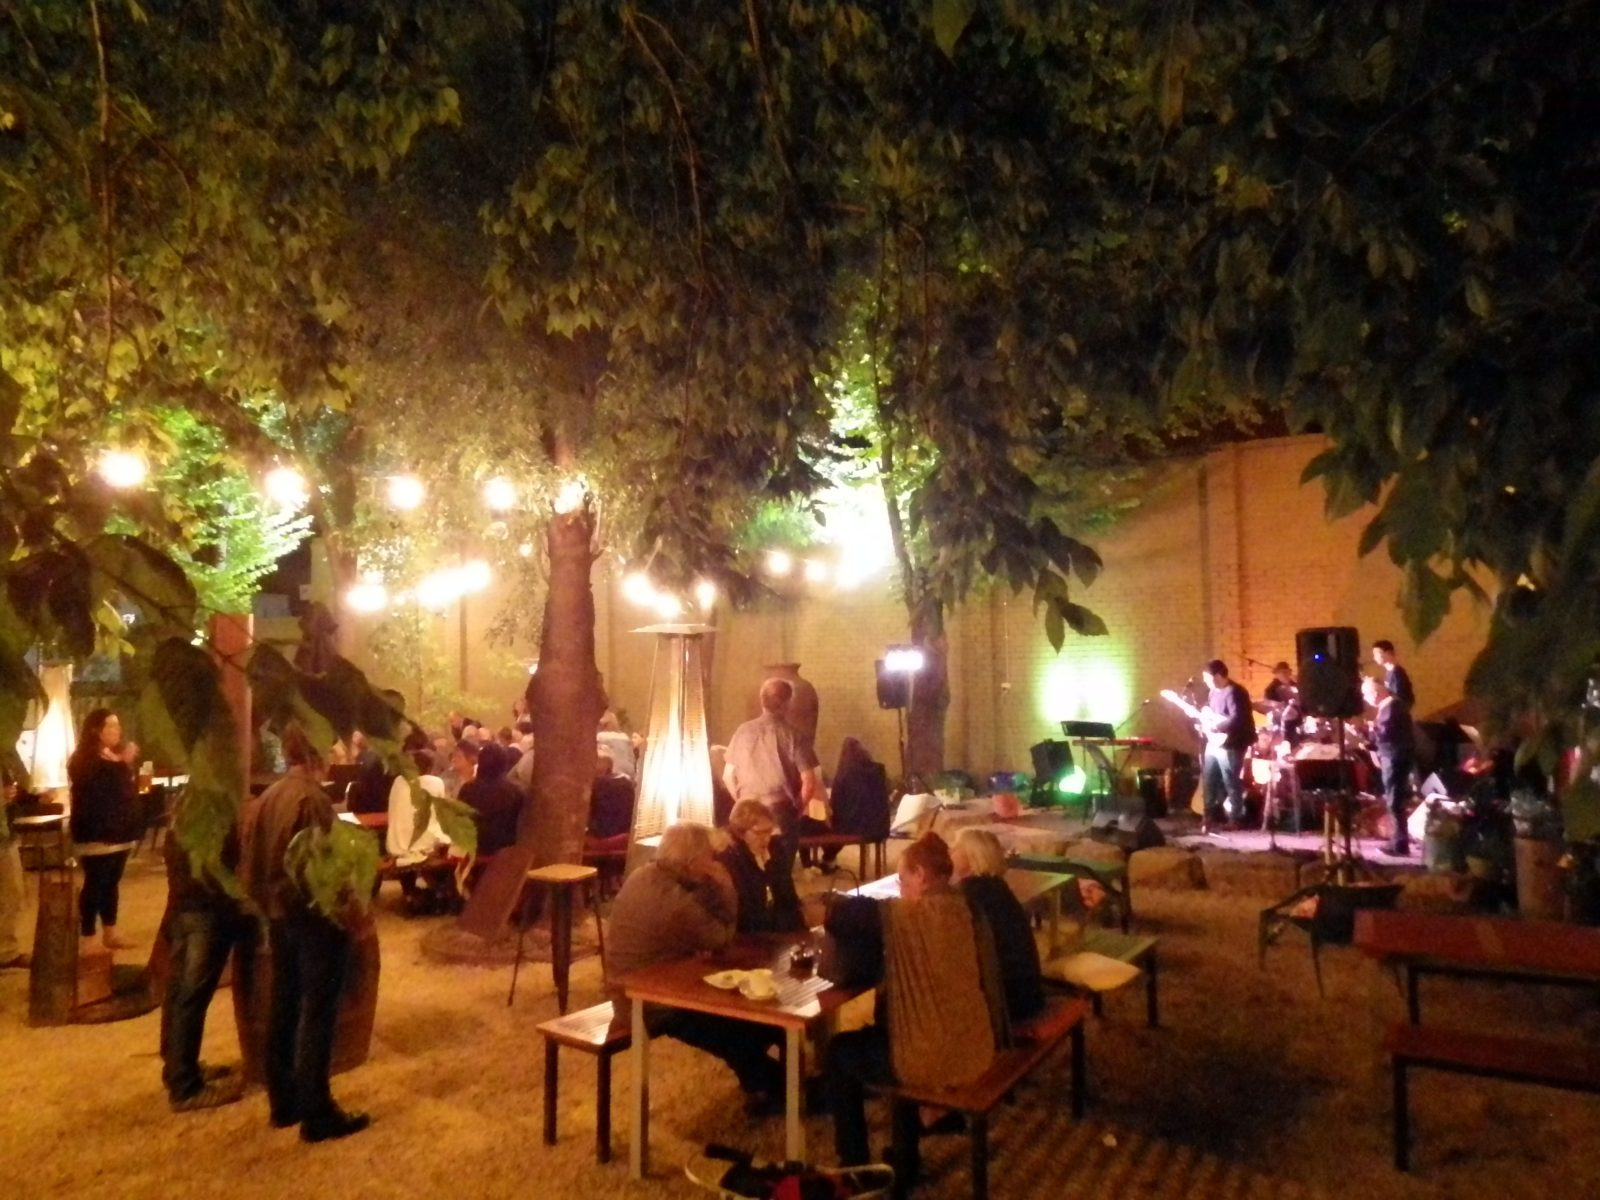 Bracket and Jam at the Delatite Hotel Courtyard